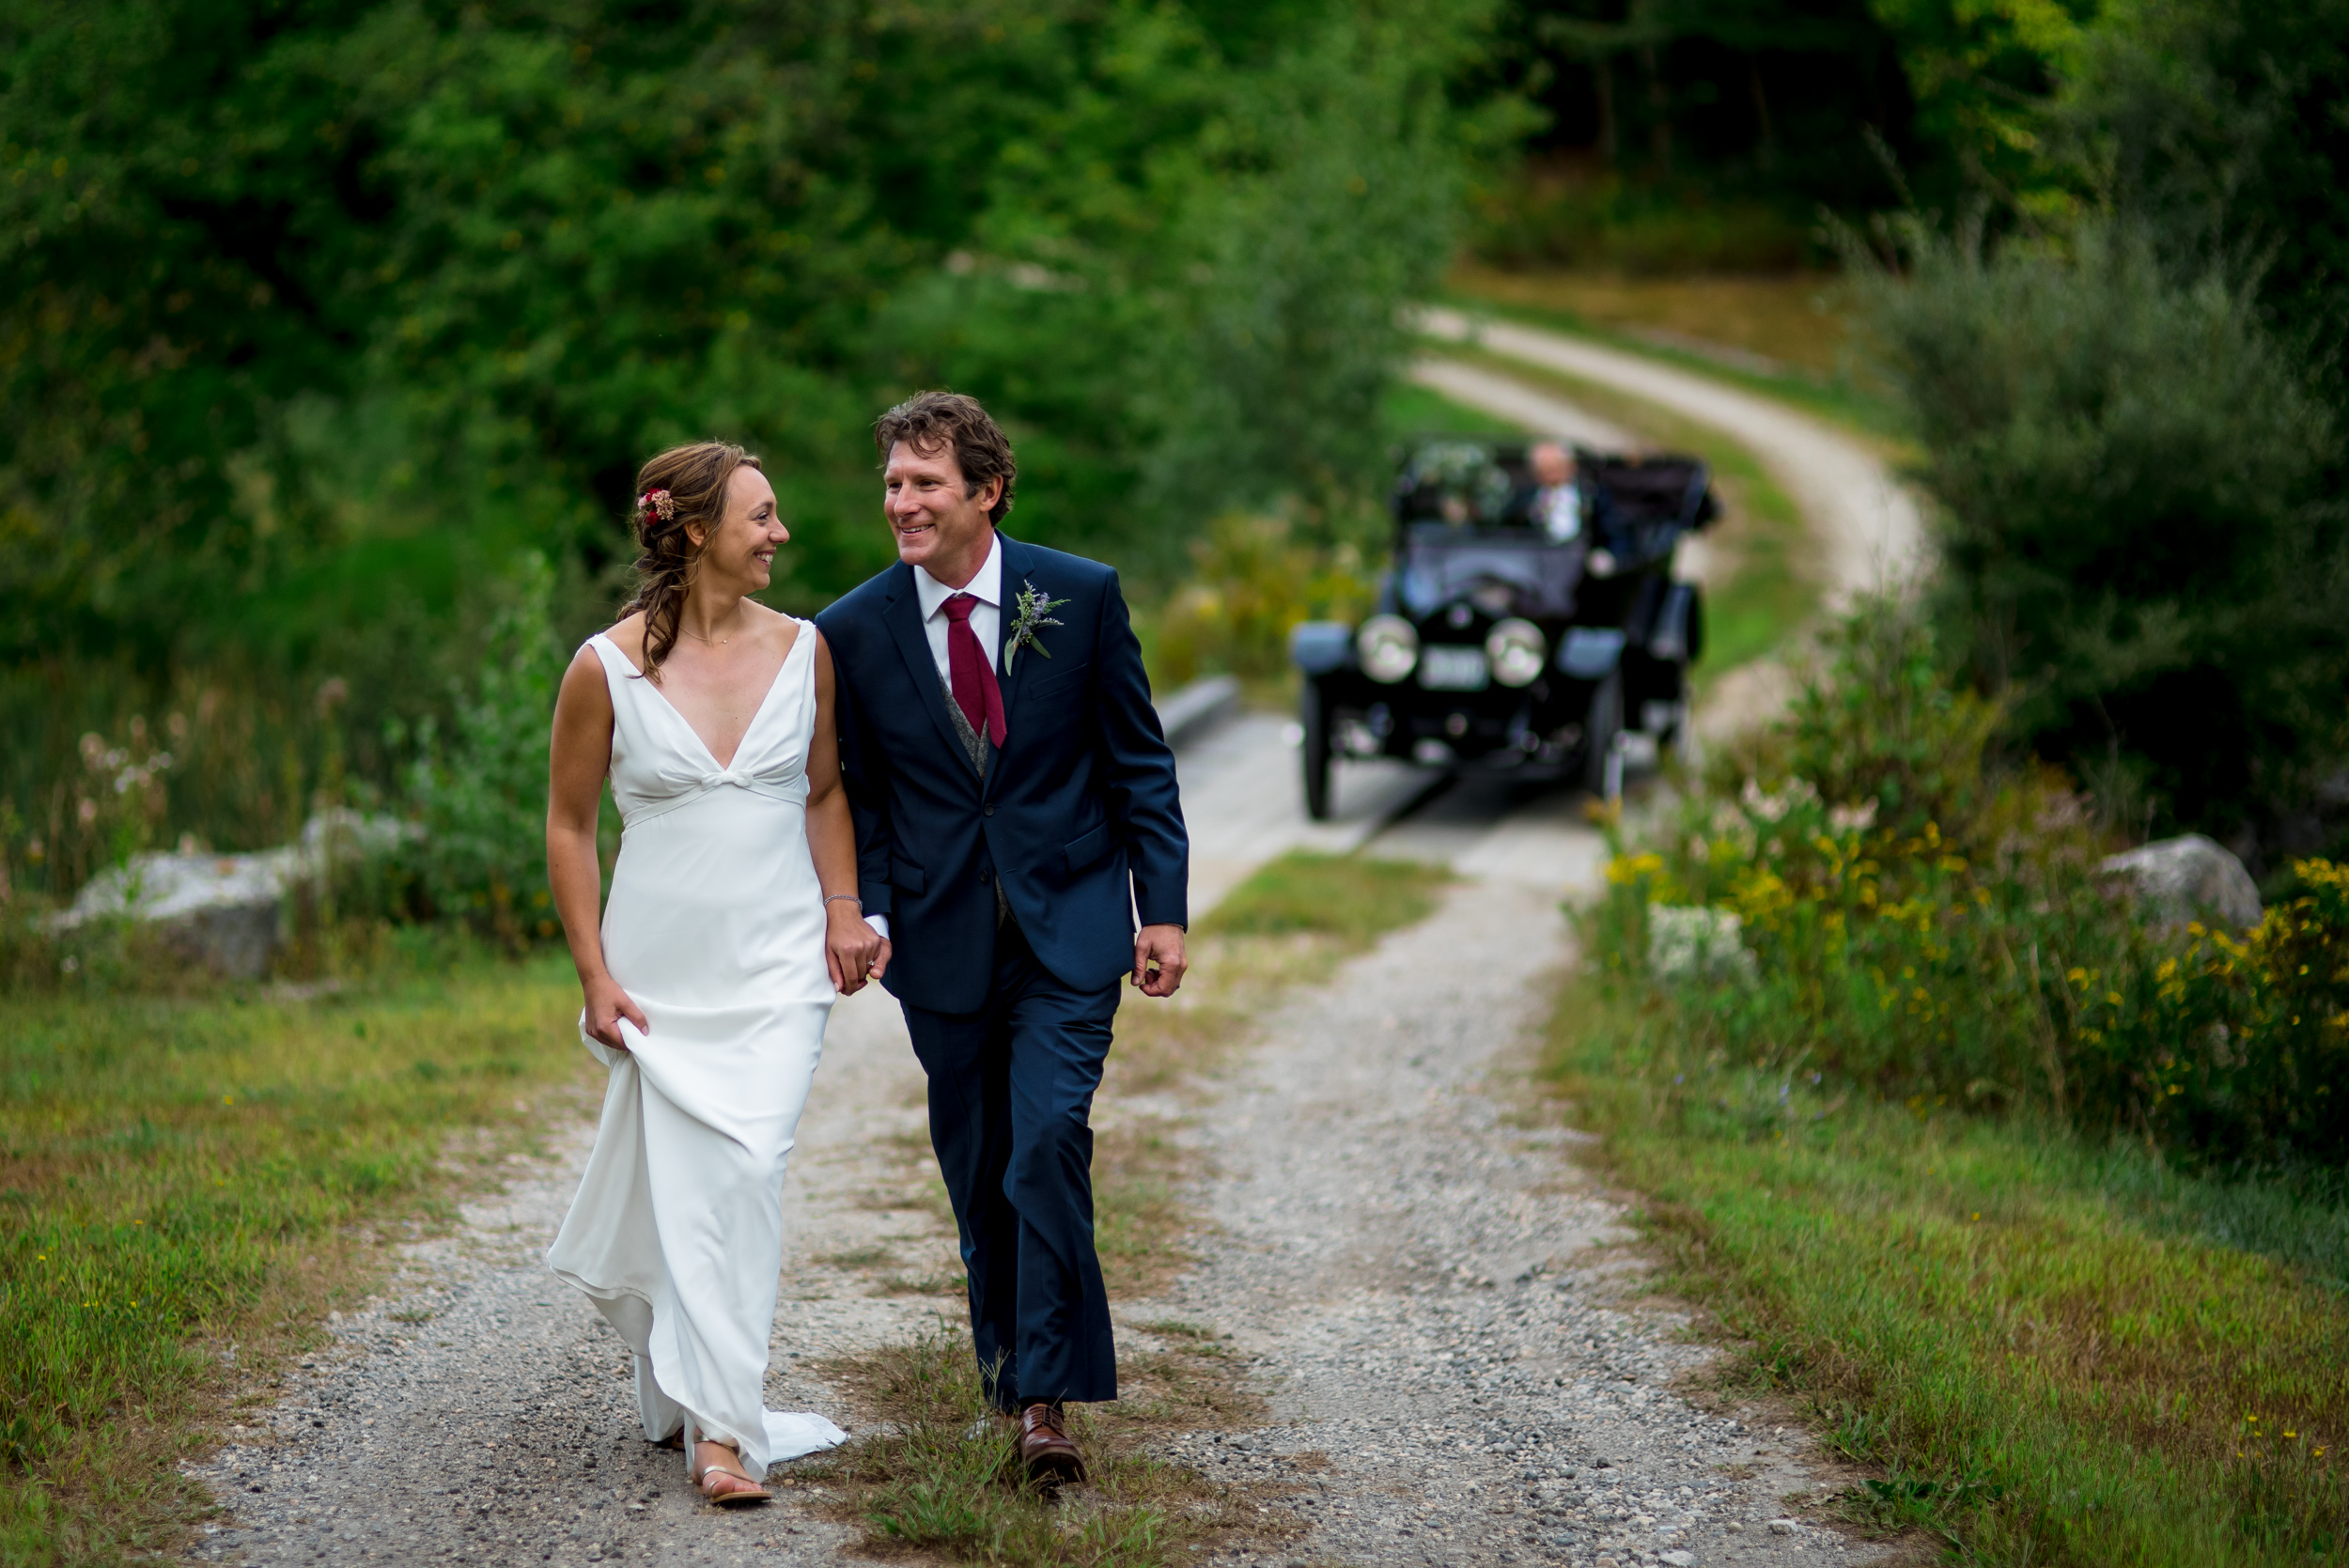 maine wedding photography_bride and groom portraits_vinatage car-54.jpg